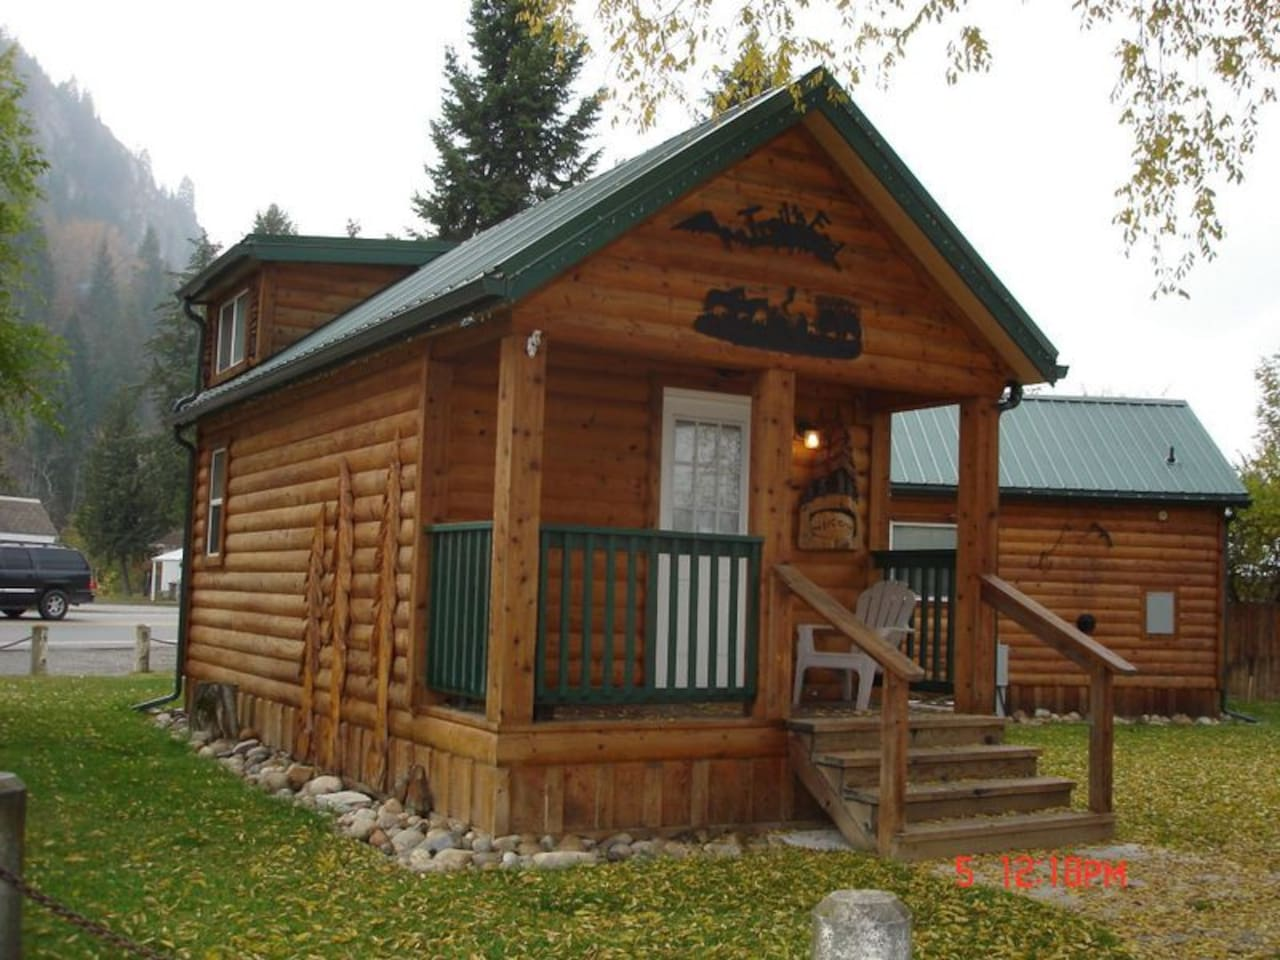 Trail's End Cabin in the Fall